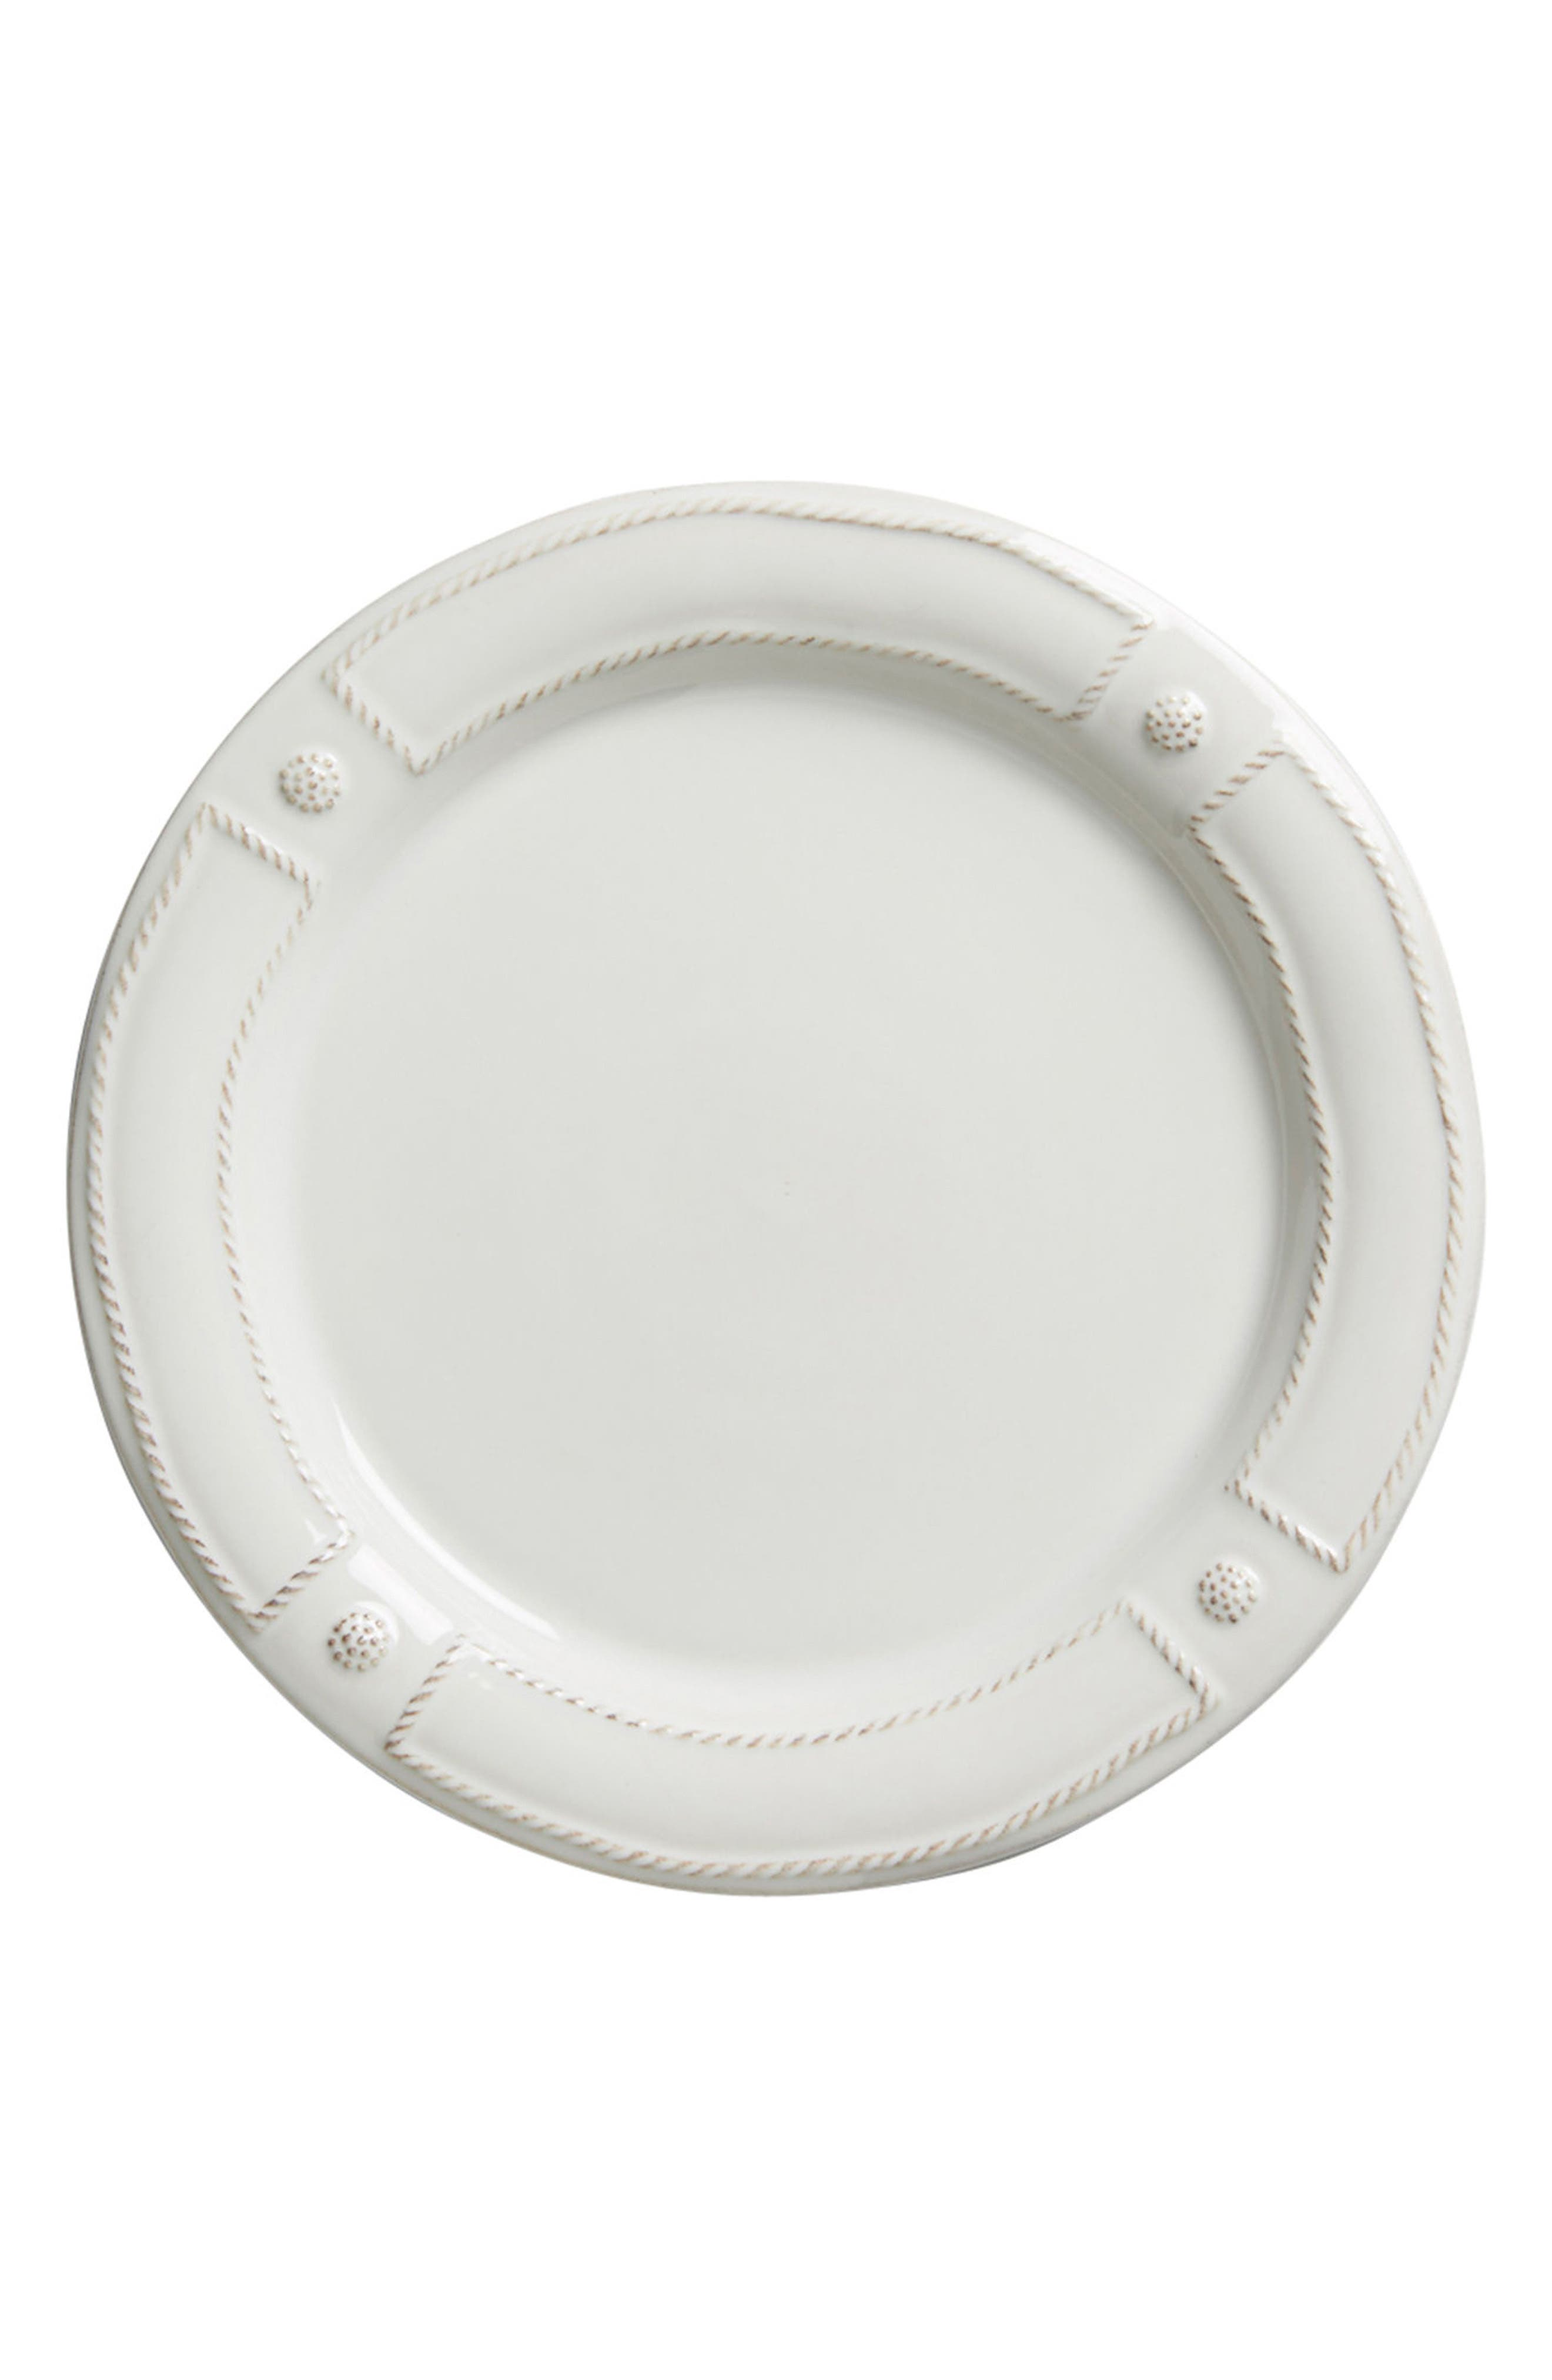 Berry & Thread Dinner Plate,                         Main,                         color, WHITEWASH